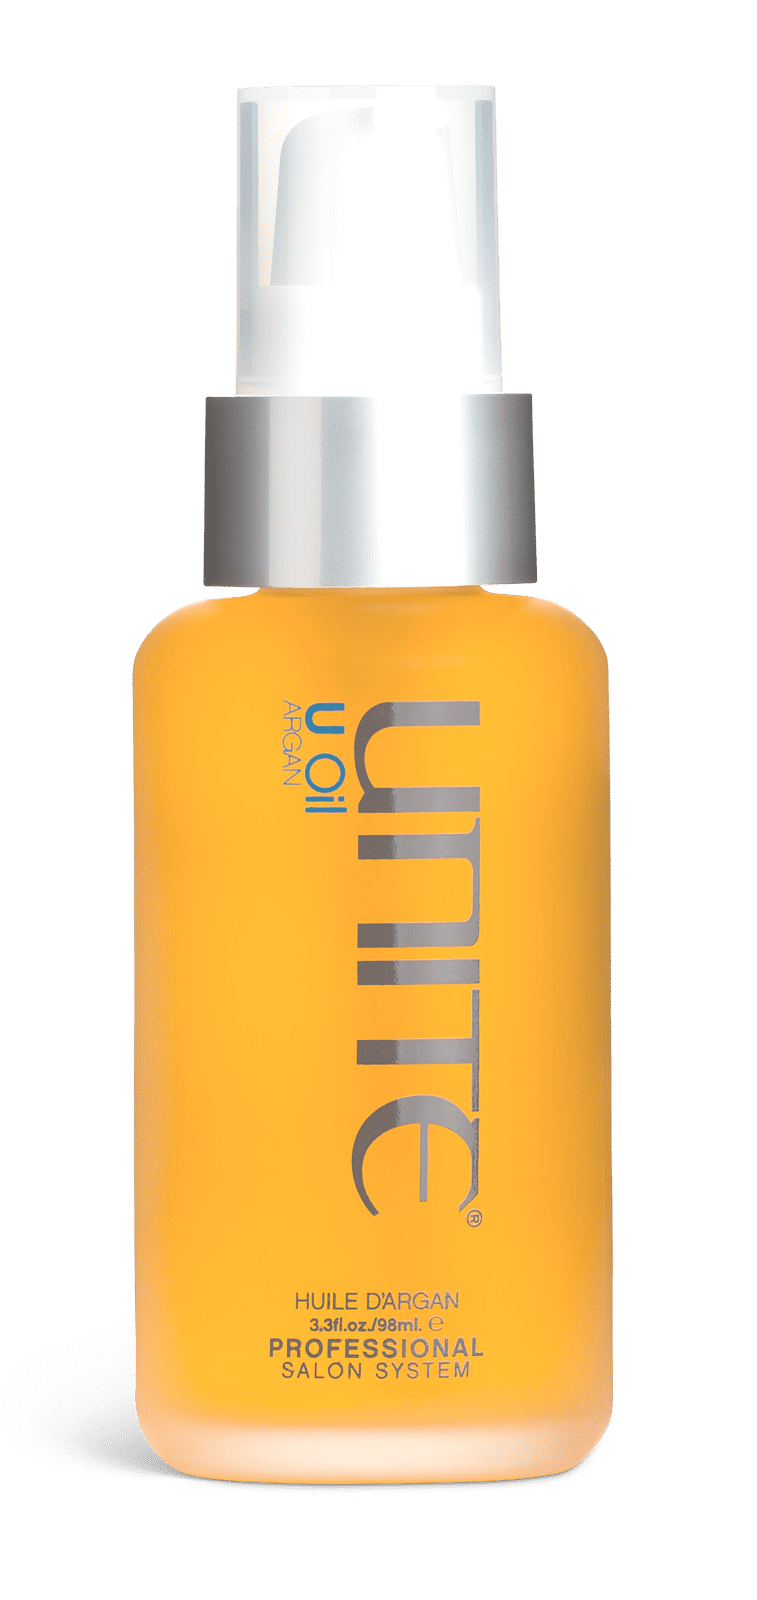 color, shampoo, hair loss - purefina Color, Shampoo, Hair Loss – Purefina unite luxury oil